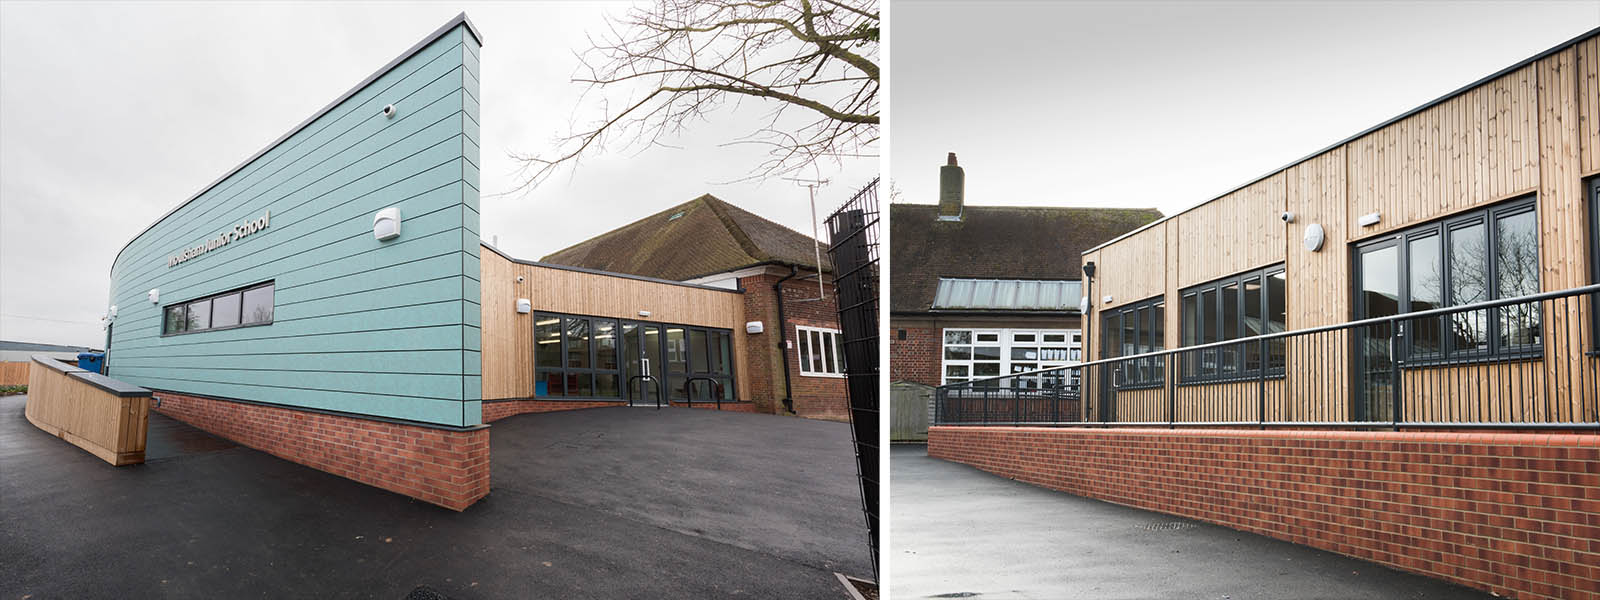 Image: Moulsham Infant and Junior School